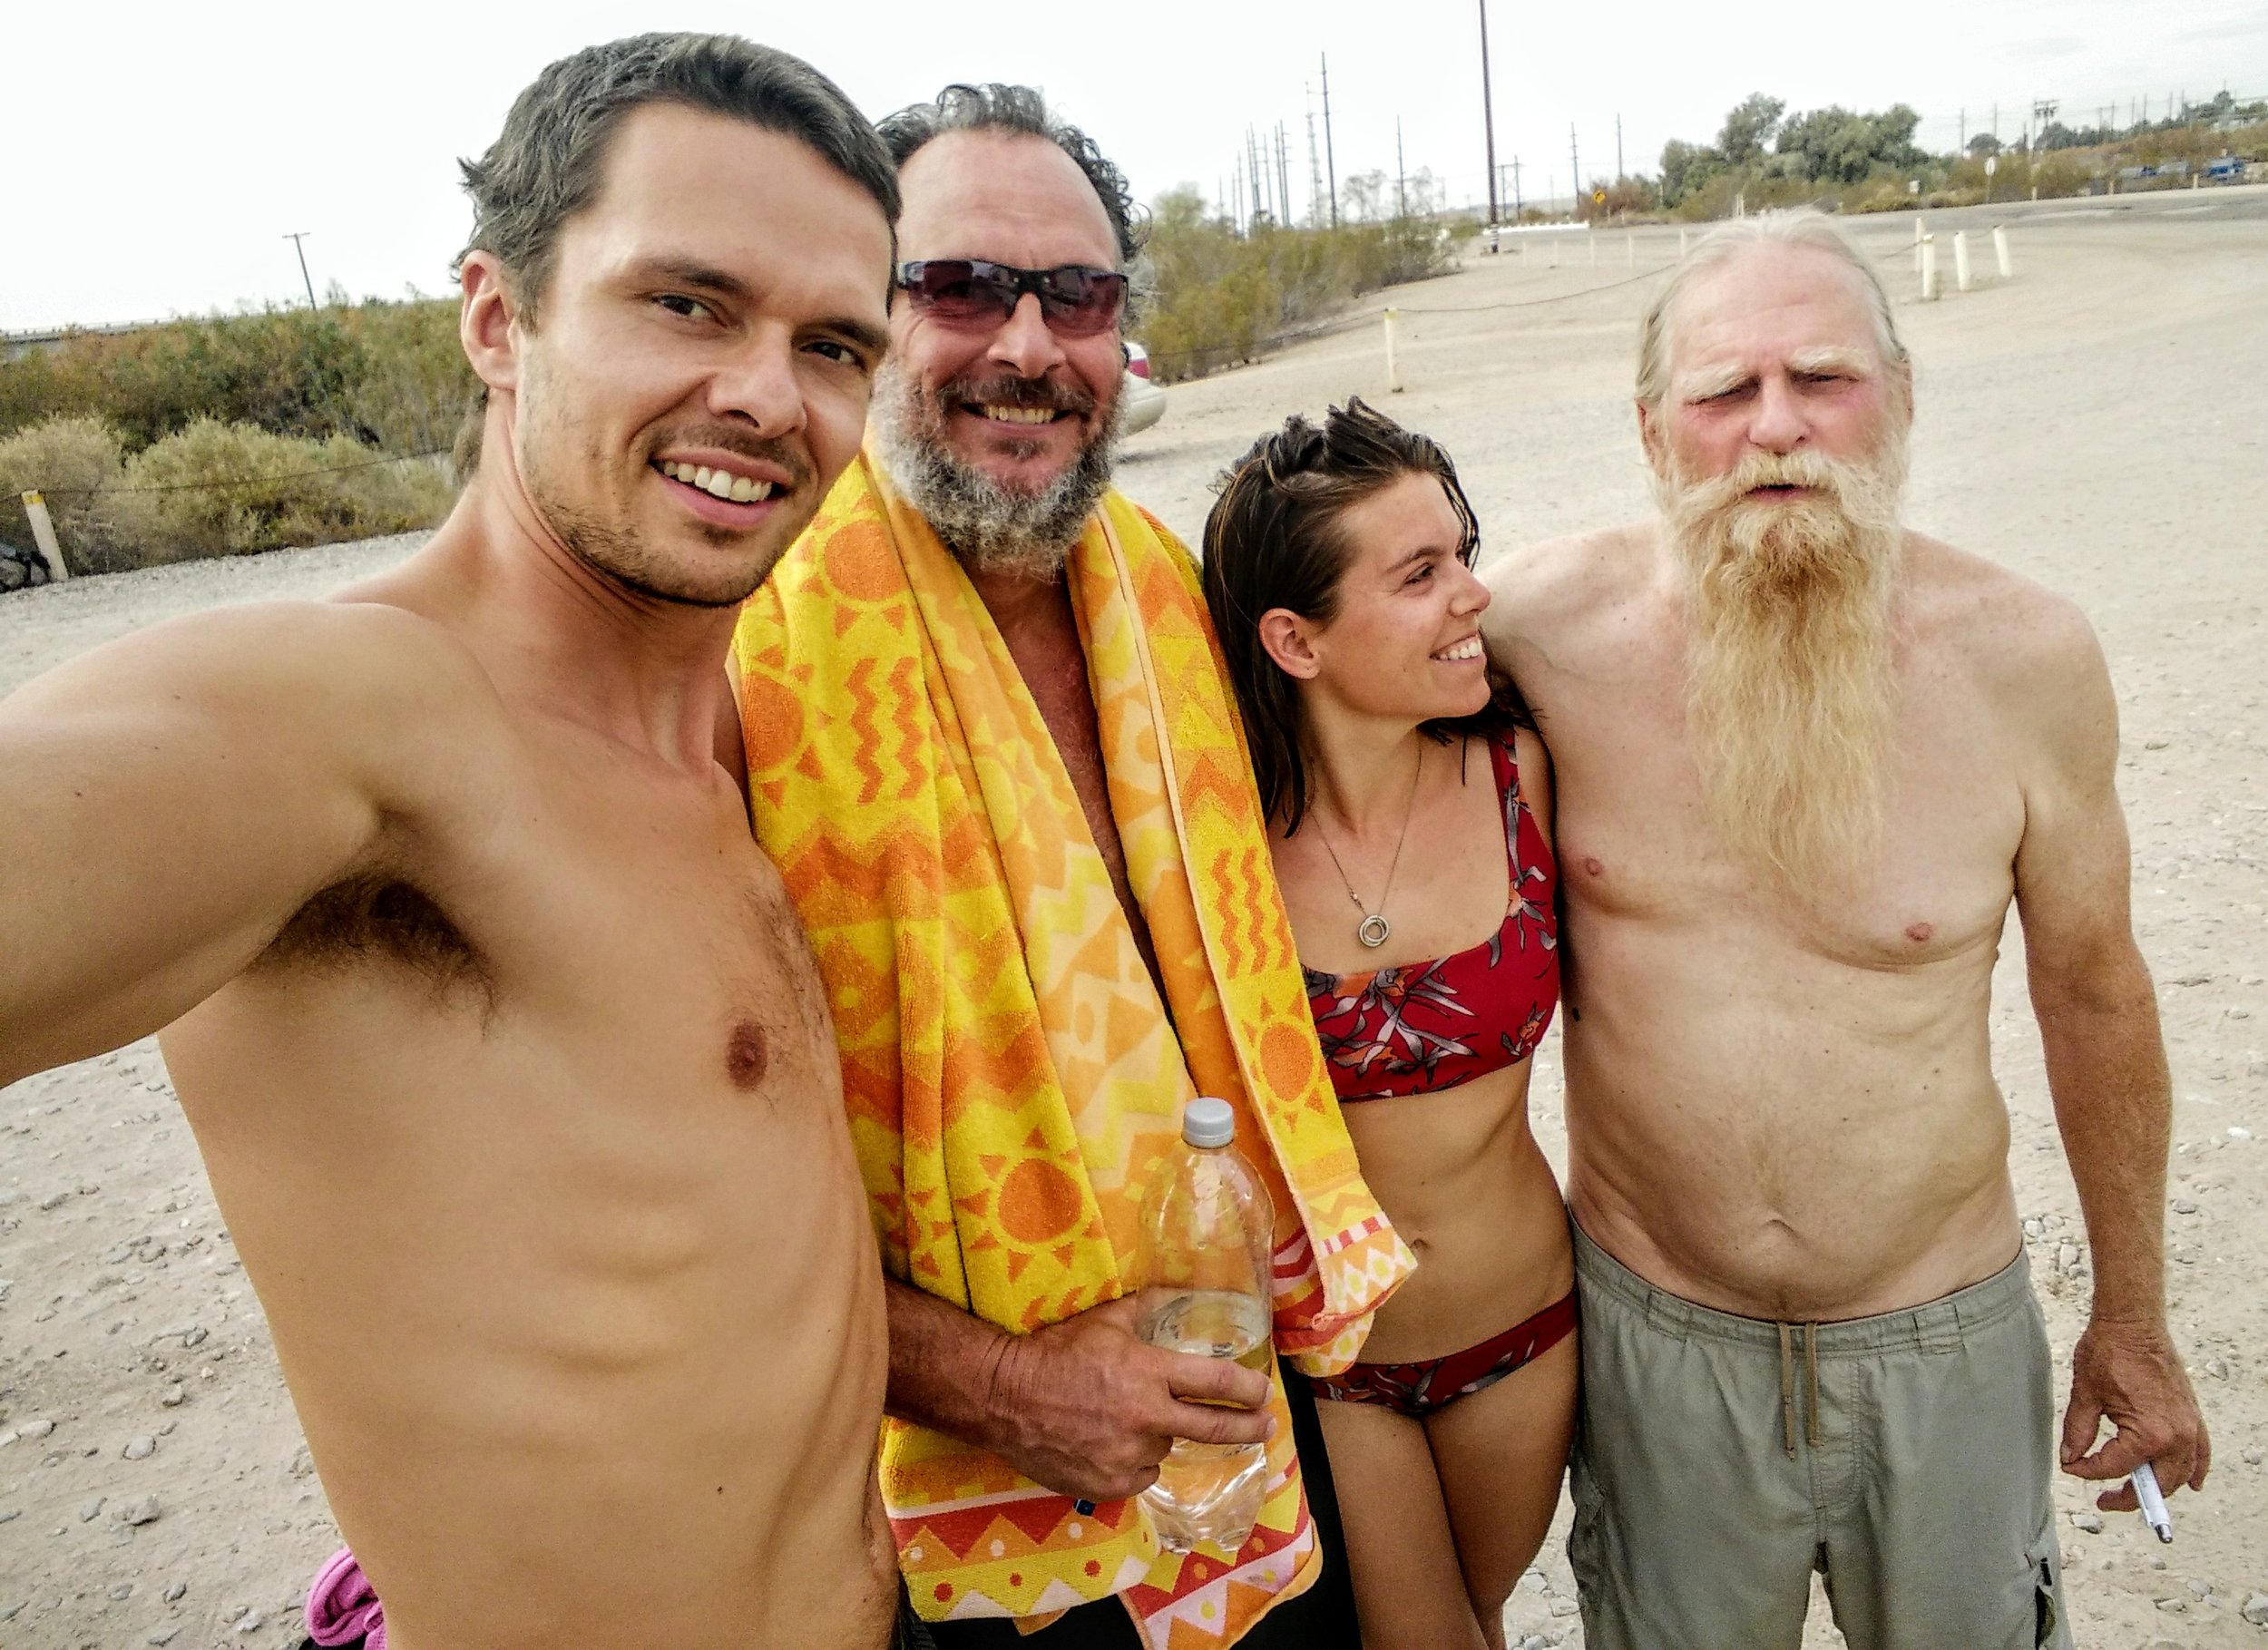 Our new friends Tom and Les. Tom, on the right, generously offered us a parking spot in front of his trailer at Slab City and Les was our fearless guide through all things weird at wild at The Slabs. We will remember them fondly and forever.